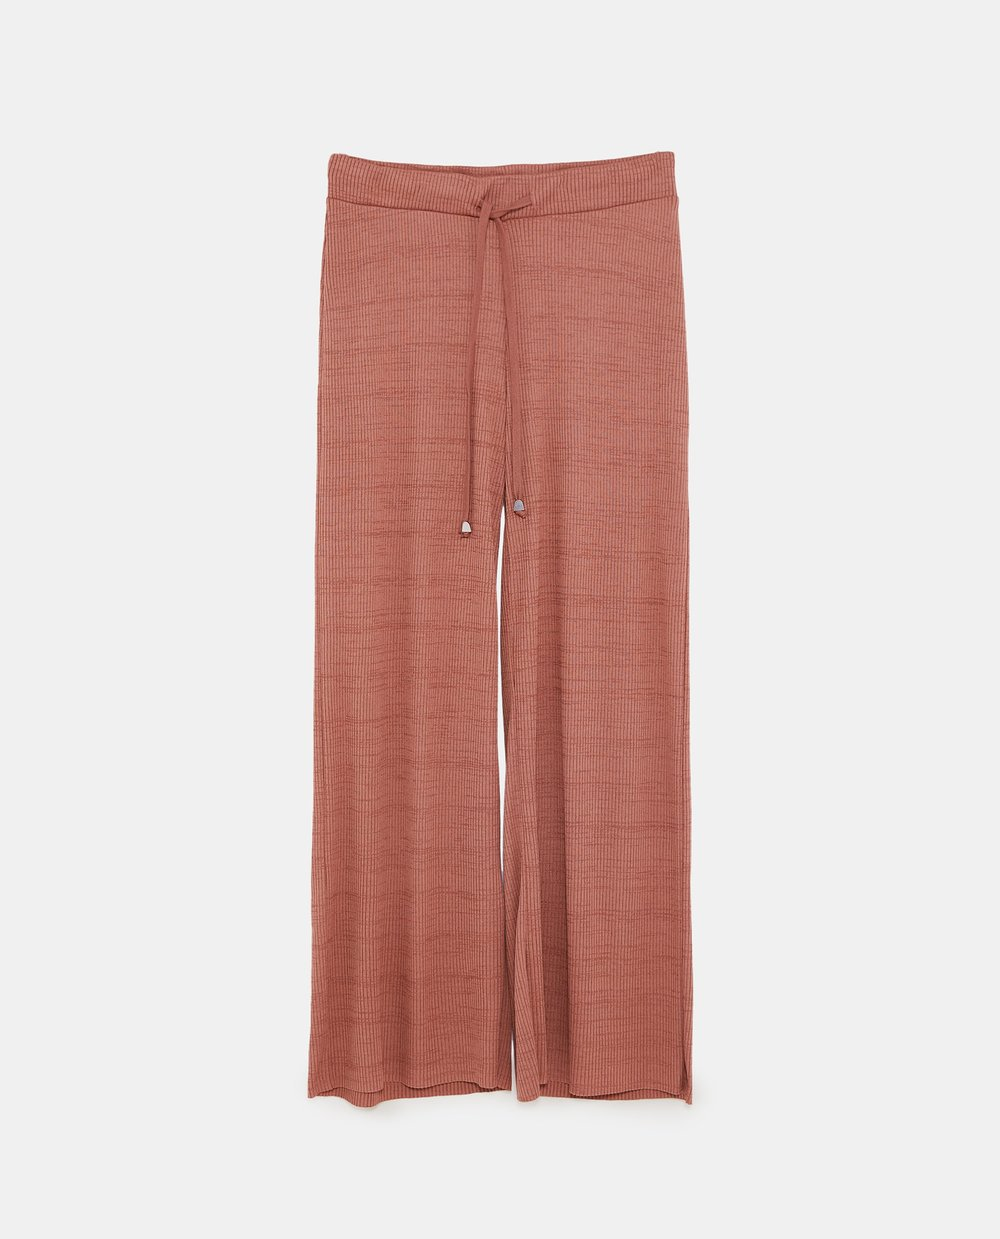 ribbed trouser, Zara, brick, £19.99